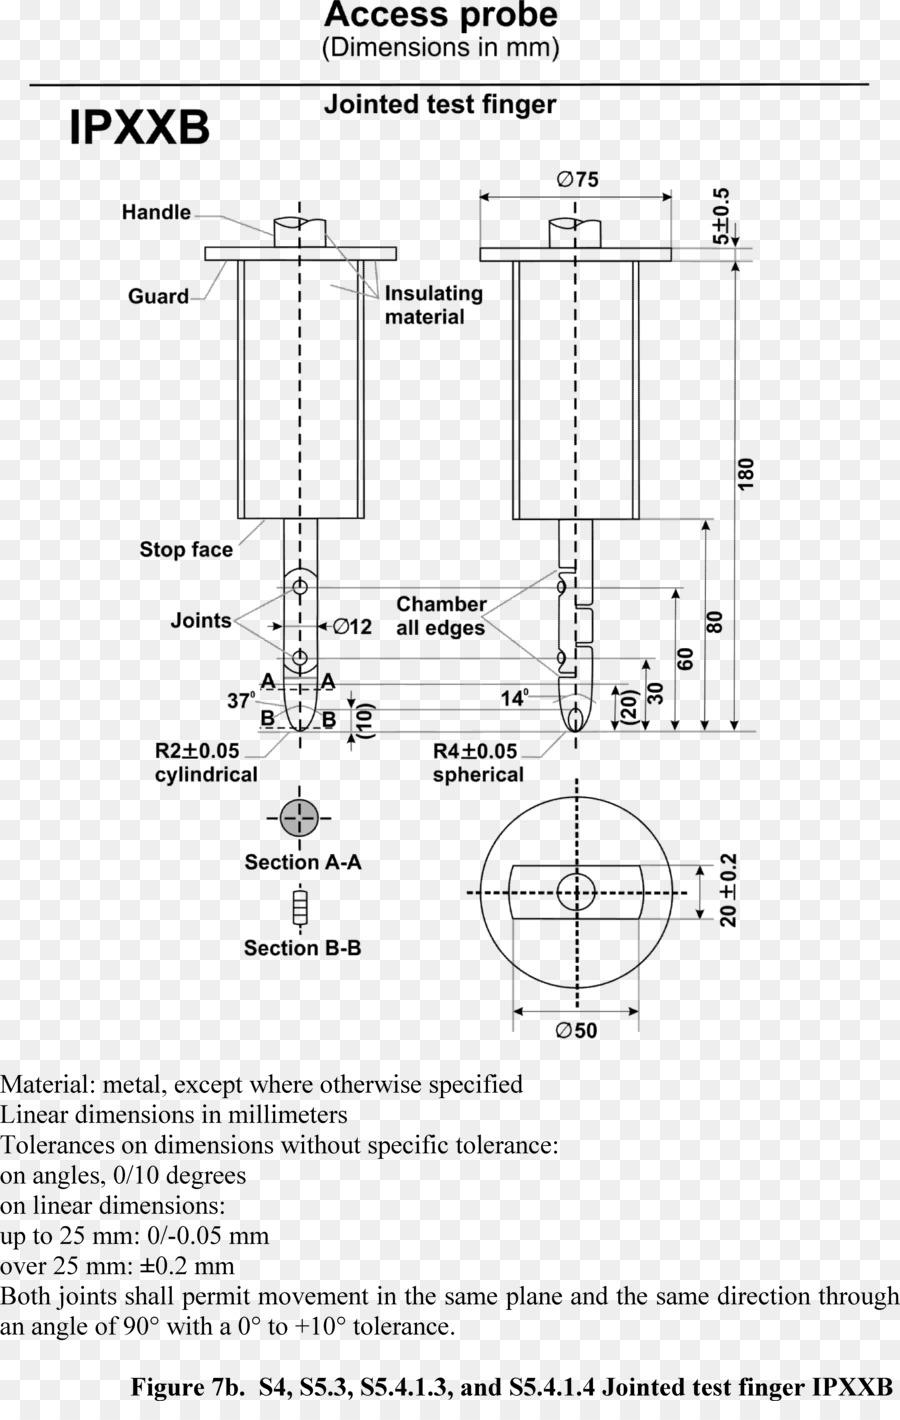 wiring diagram electric vehicle federal motor vehicle safety wiring multiple recessed lights diagram wiring diagram electric vehicle federal motor vehicle safety standards federal motor vehicle safety standards